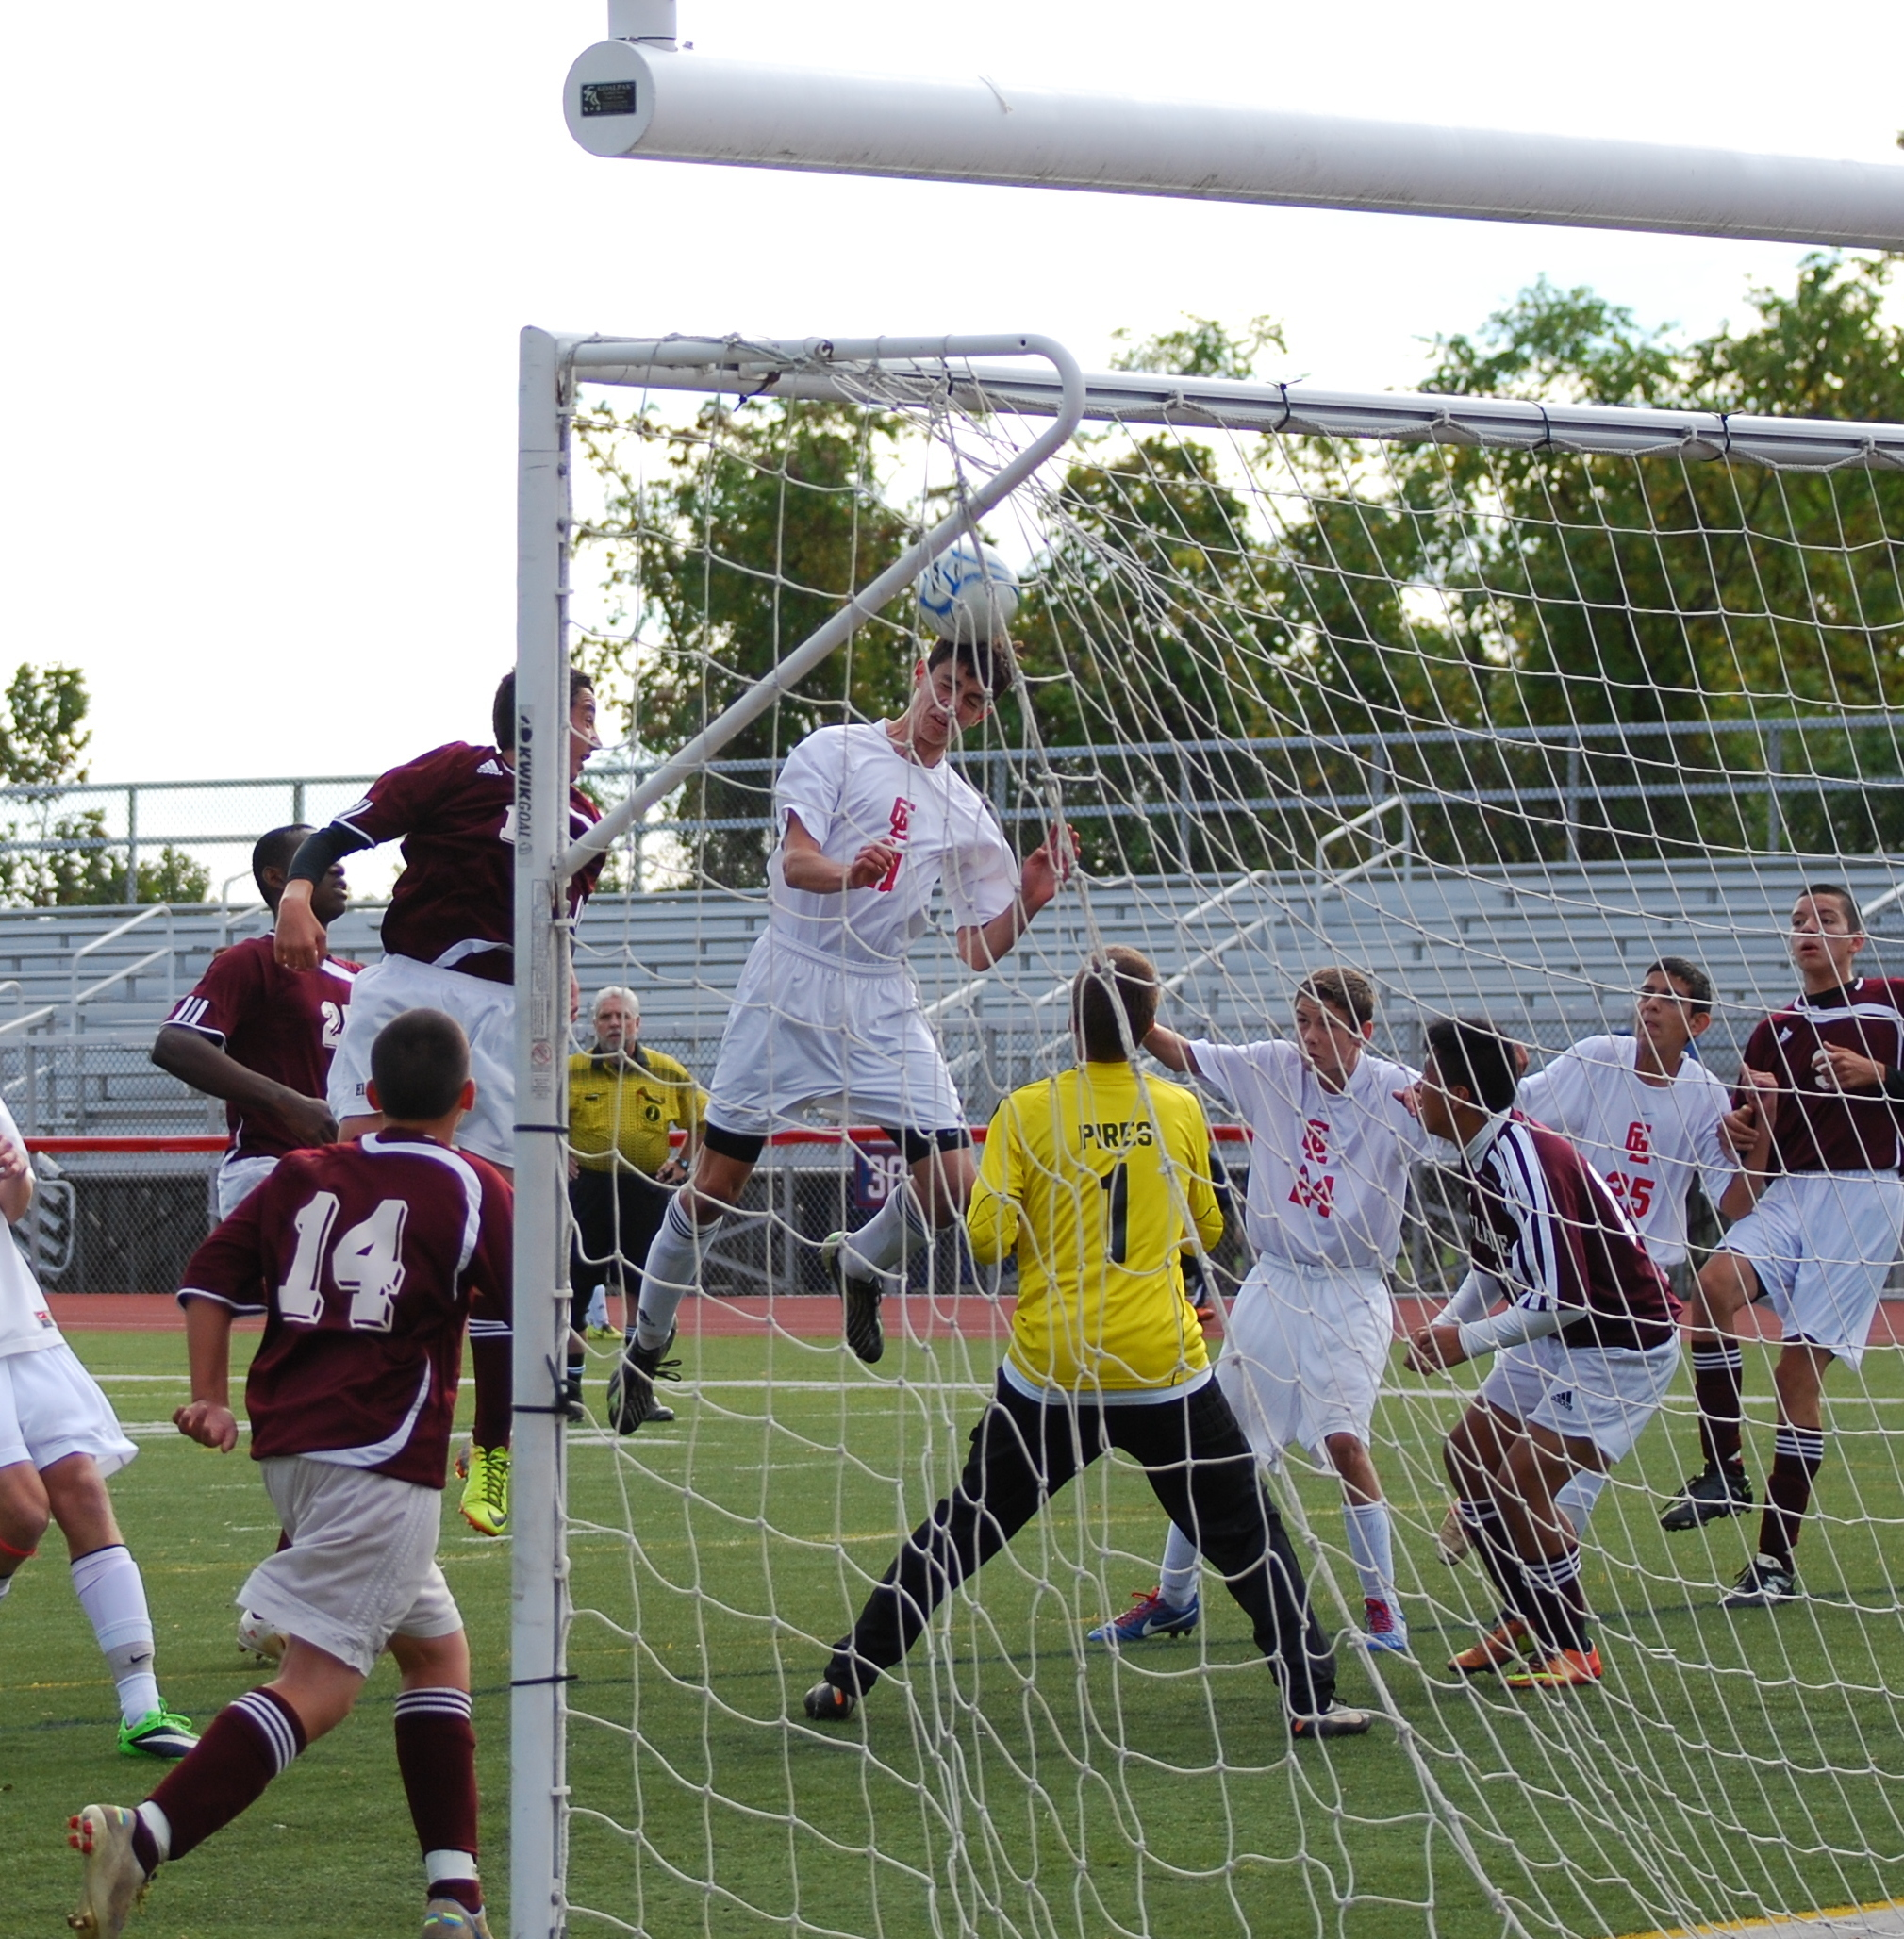 719393d6c76a6155adbc_2013_gl_boys_josh_header_vs_union.jpg